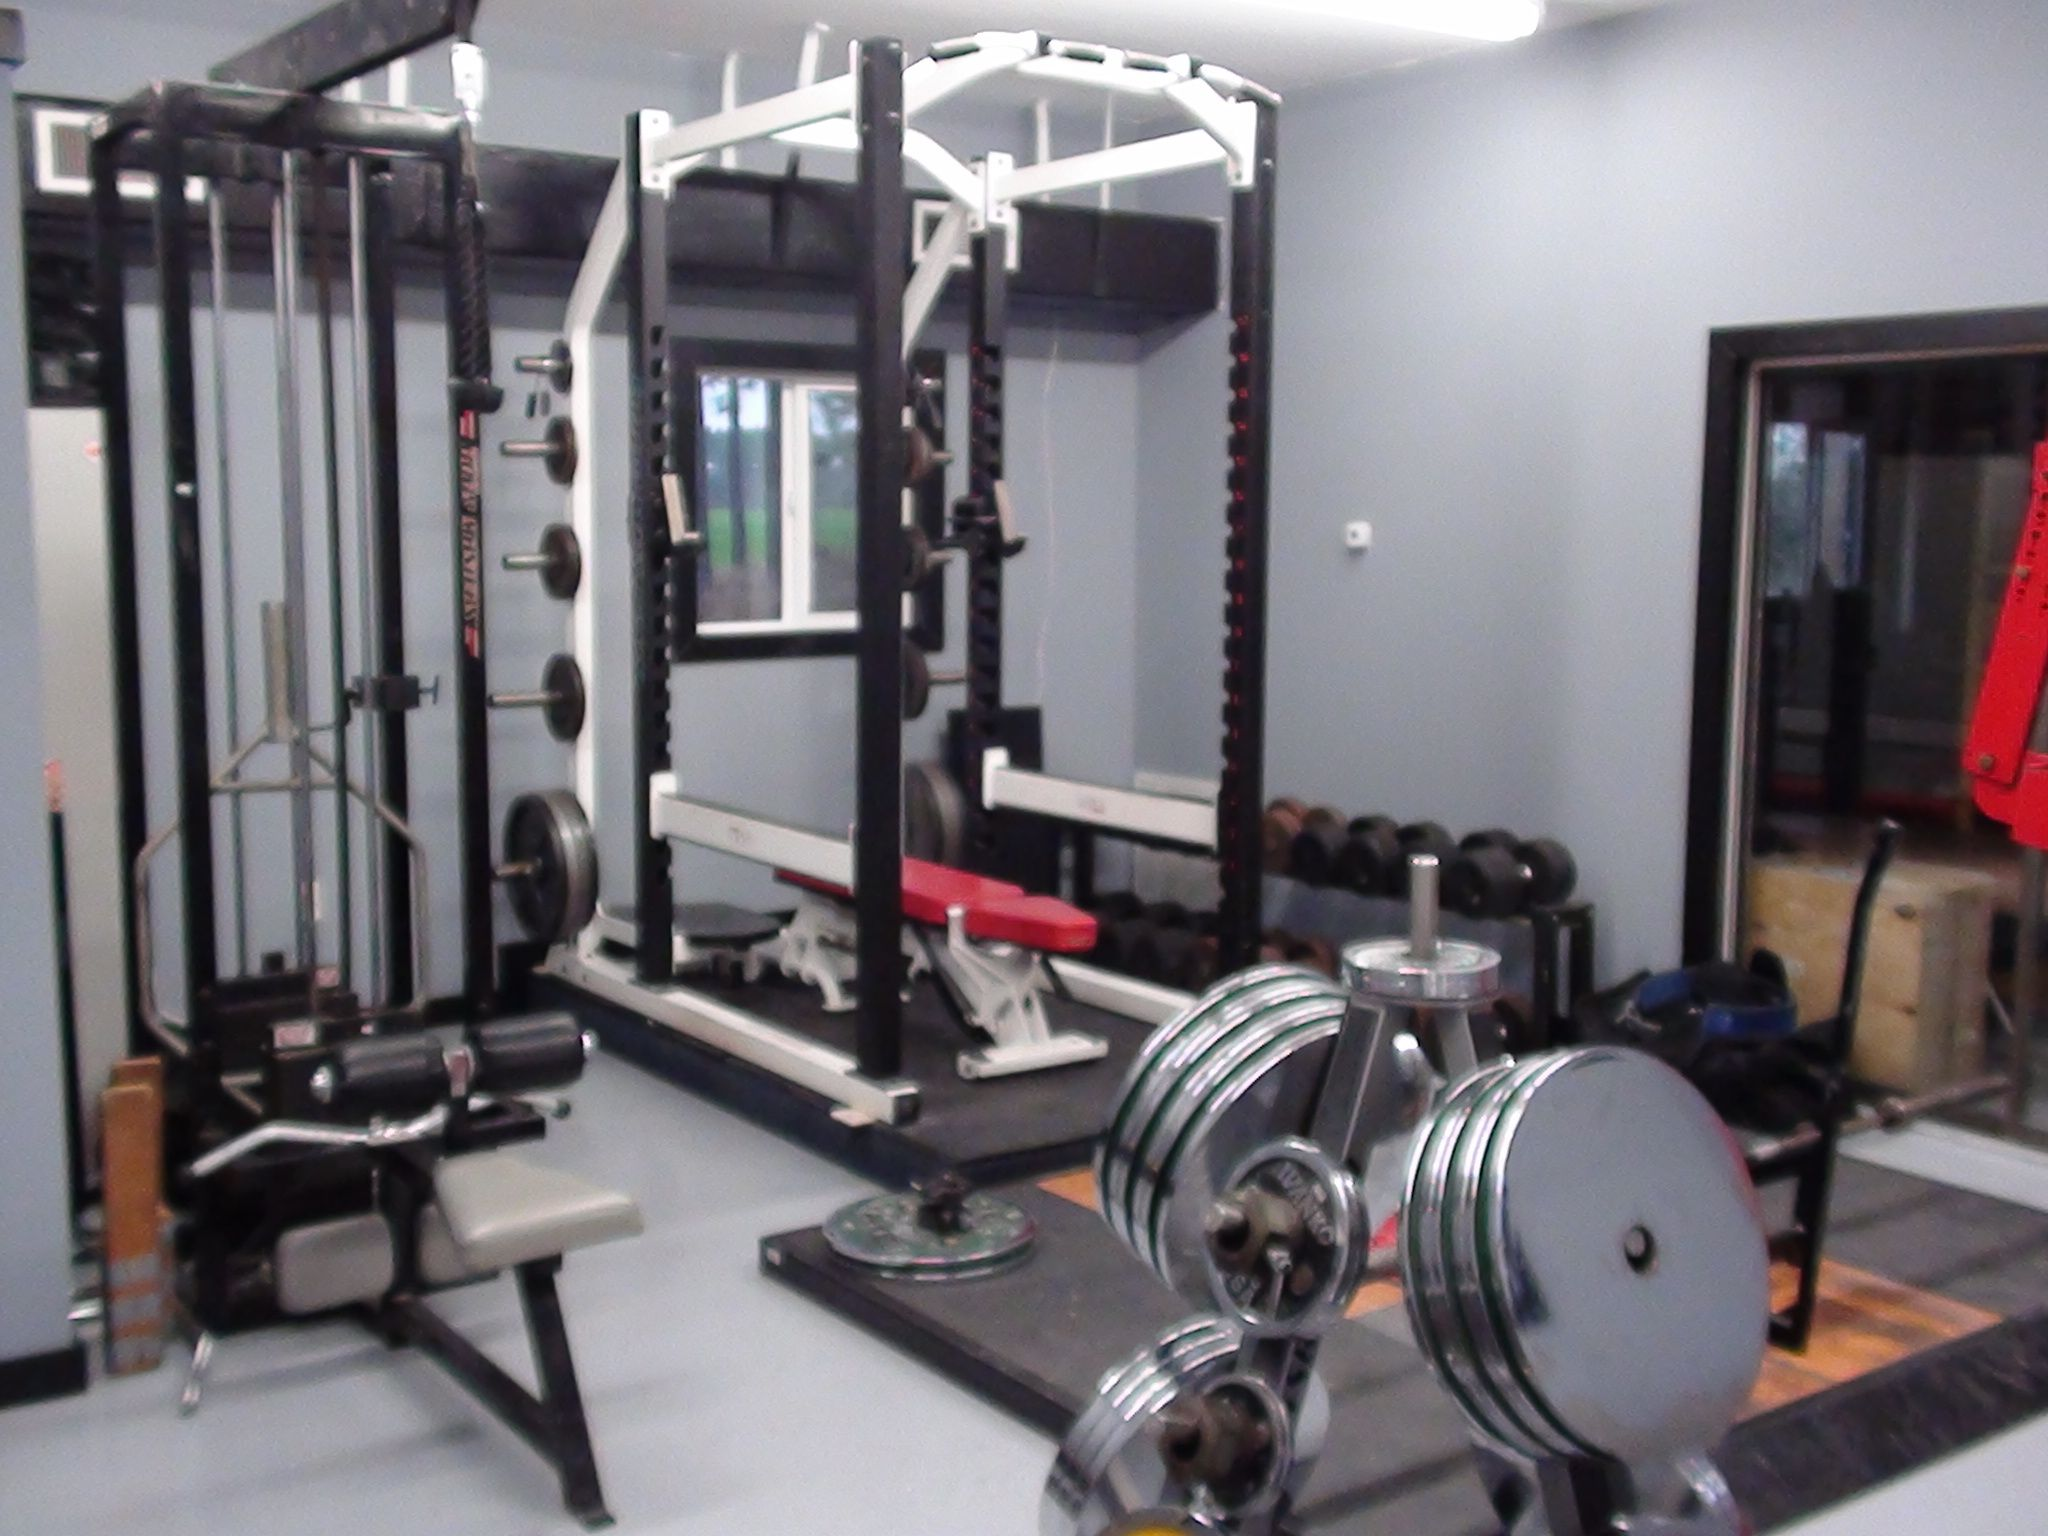 Weight racks and plates dream home ideas pinterest